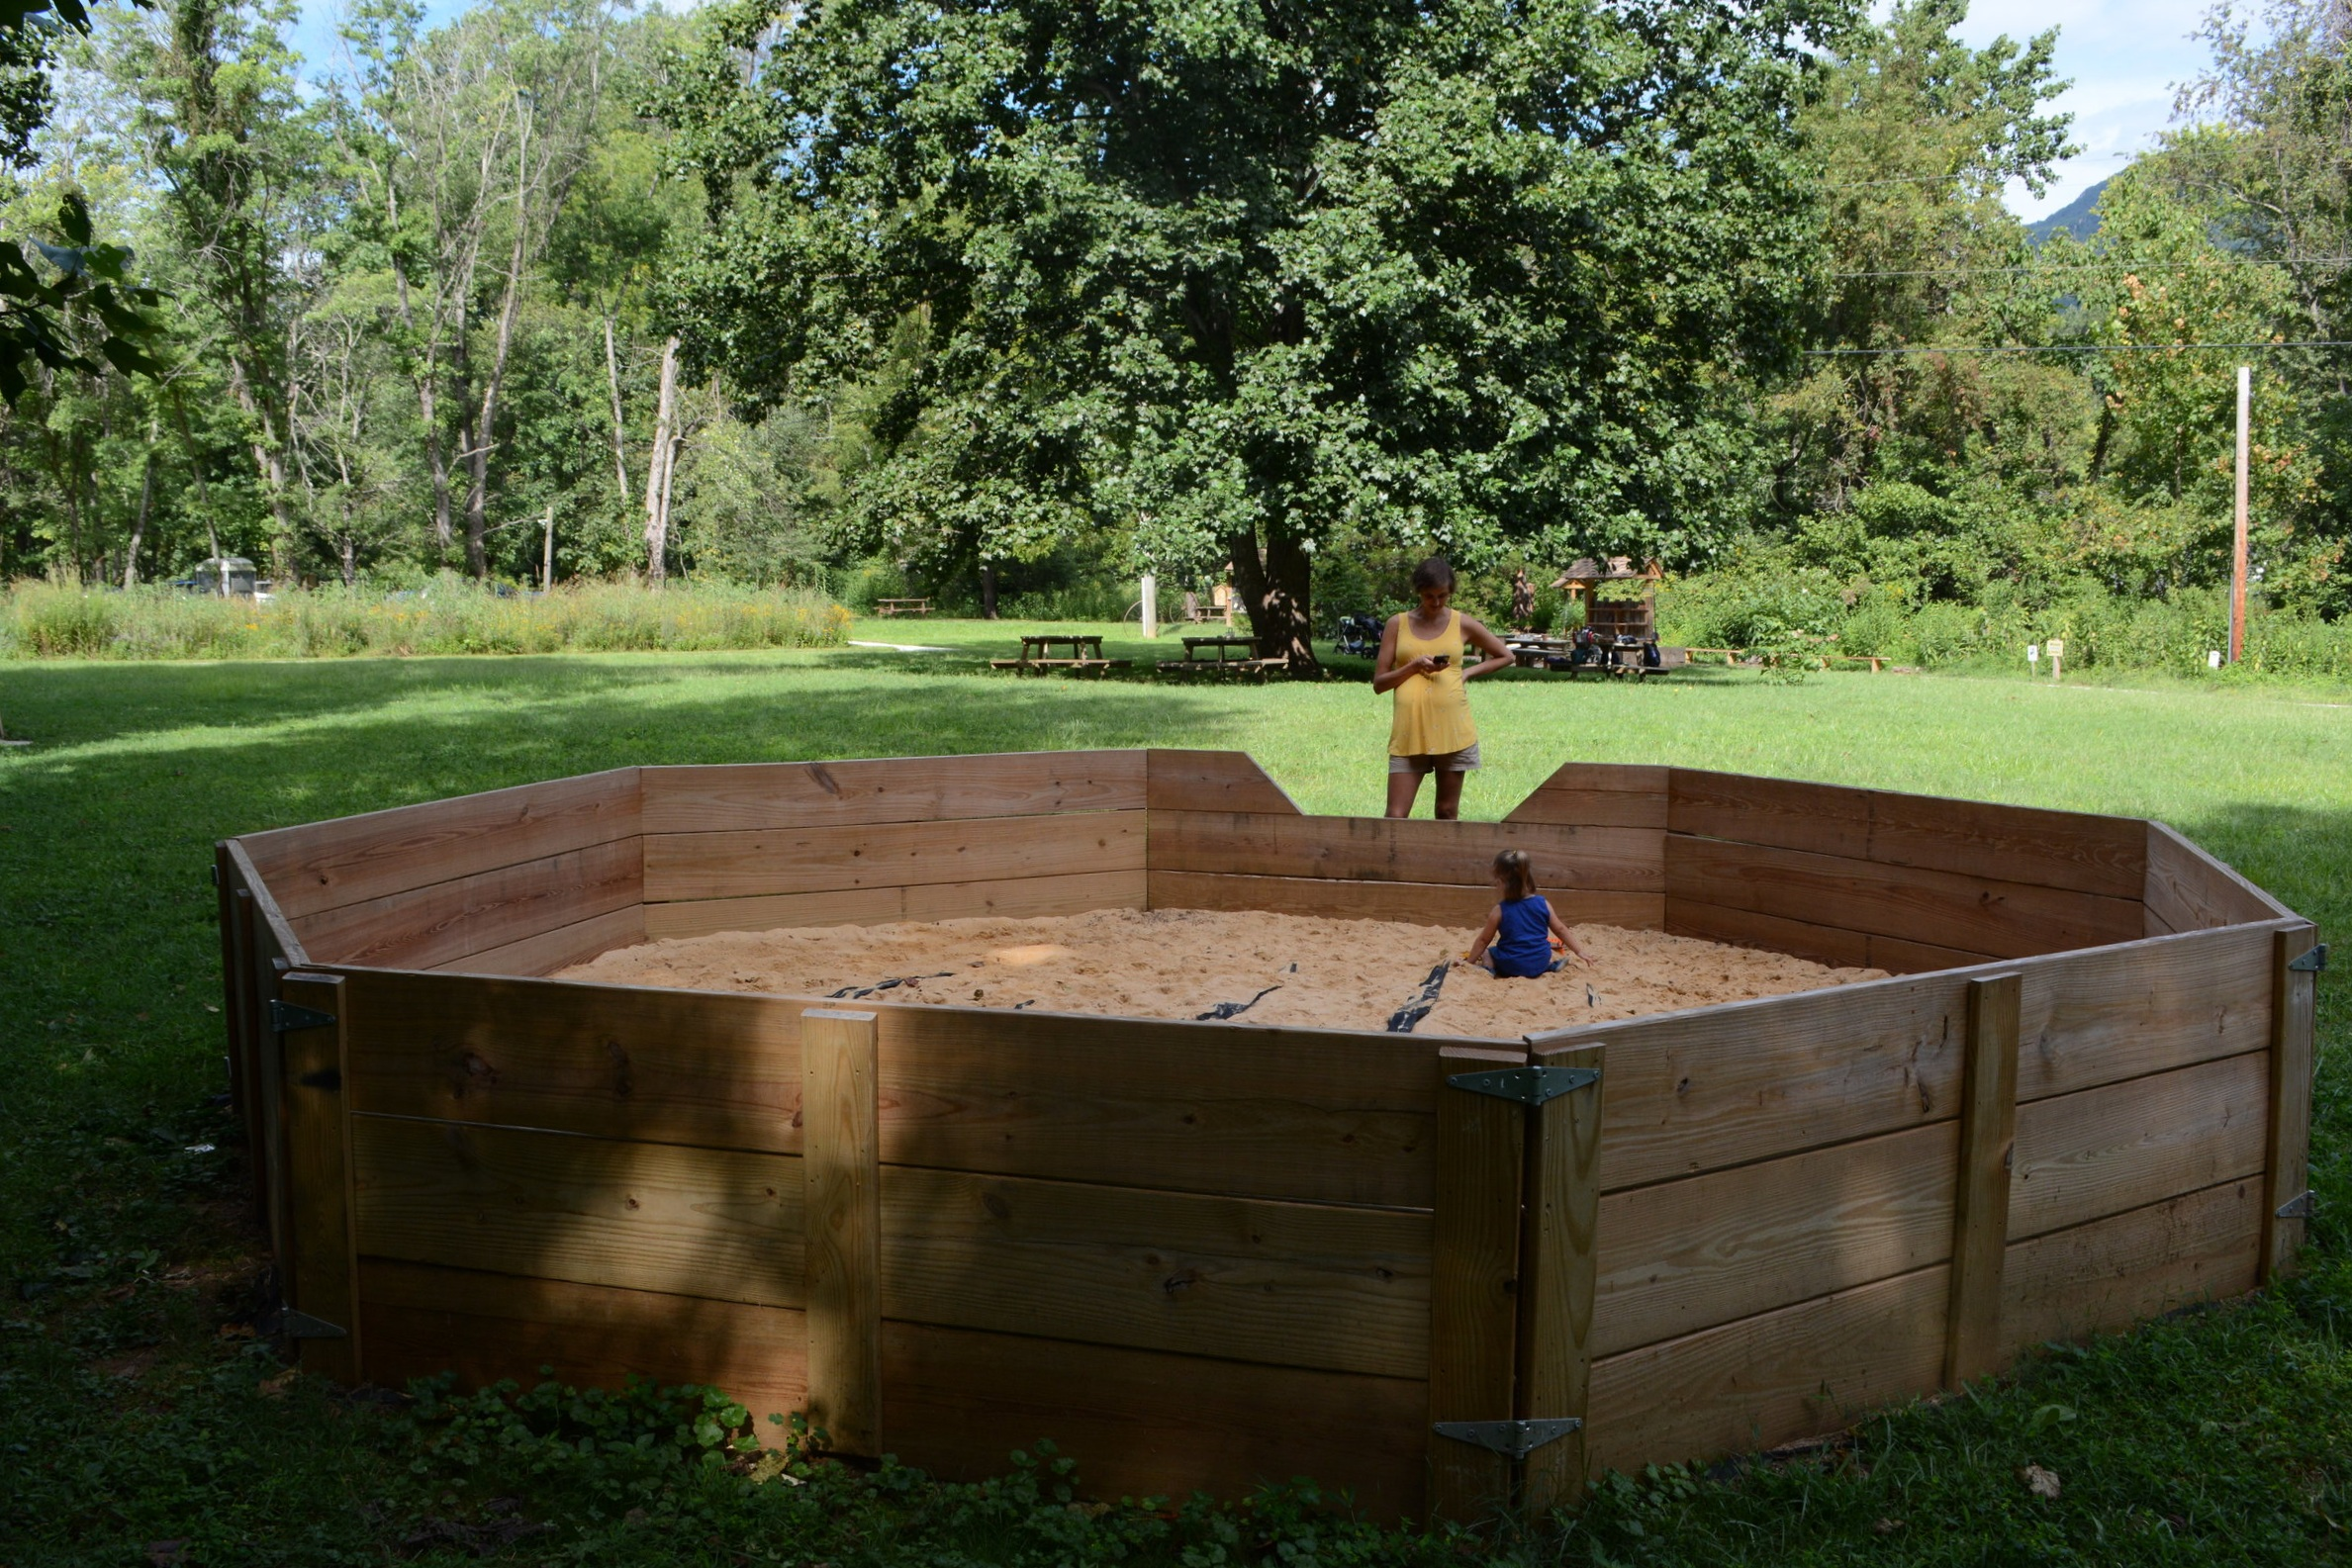 The huge sandbox is another must-do for most.